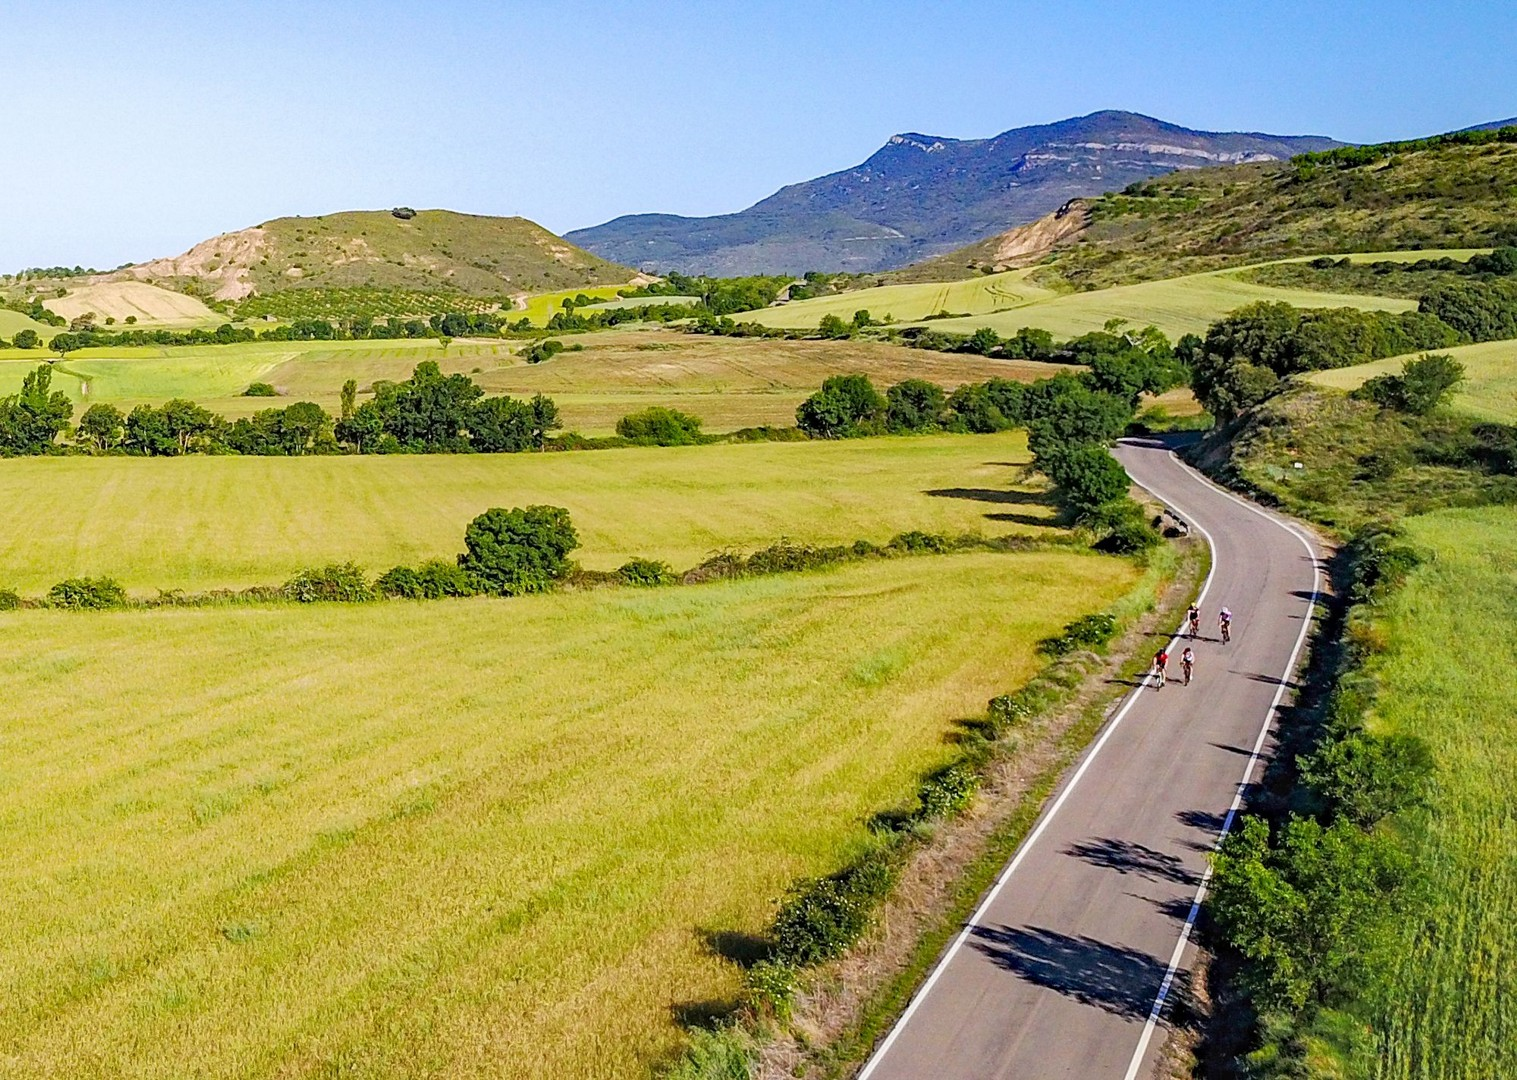 guided-road-cycling-holiday-northern-spain-saddle-skedaddle-tour-bilbao-to-barcelona.jpg - Northern Spain - Bilbao to Barcelona - Guided Road Cycling Holiday - Road Cycling